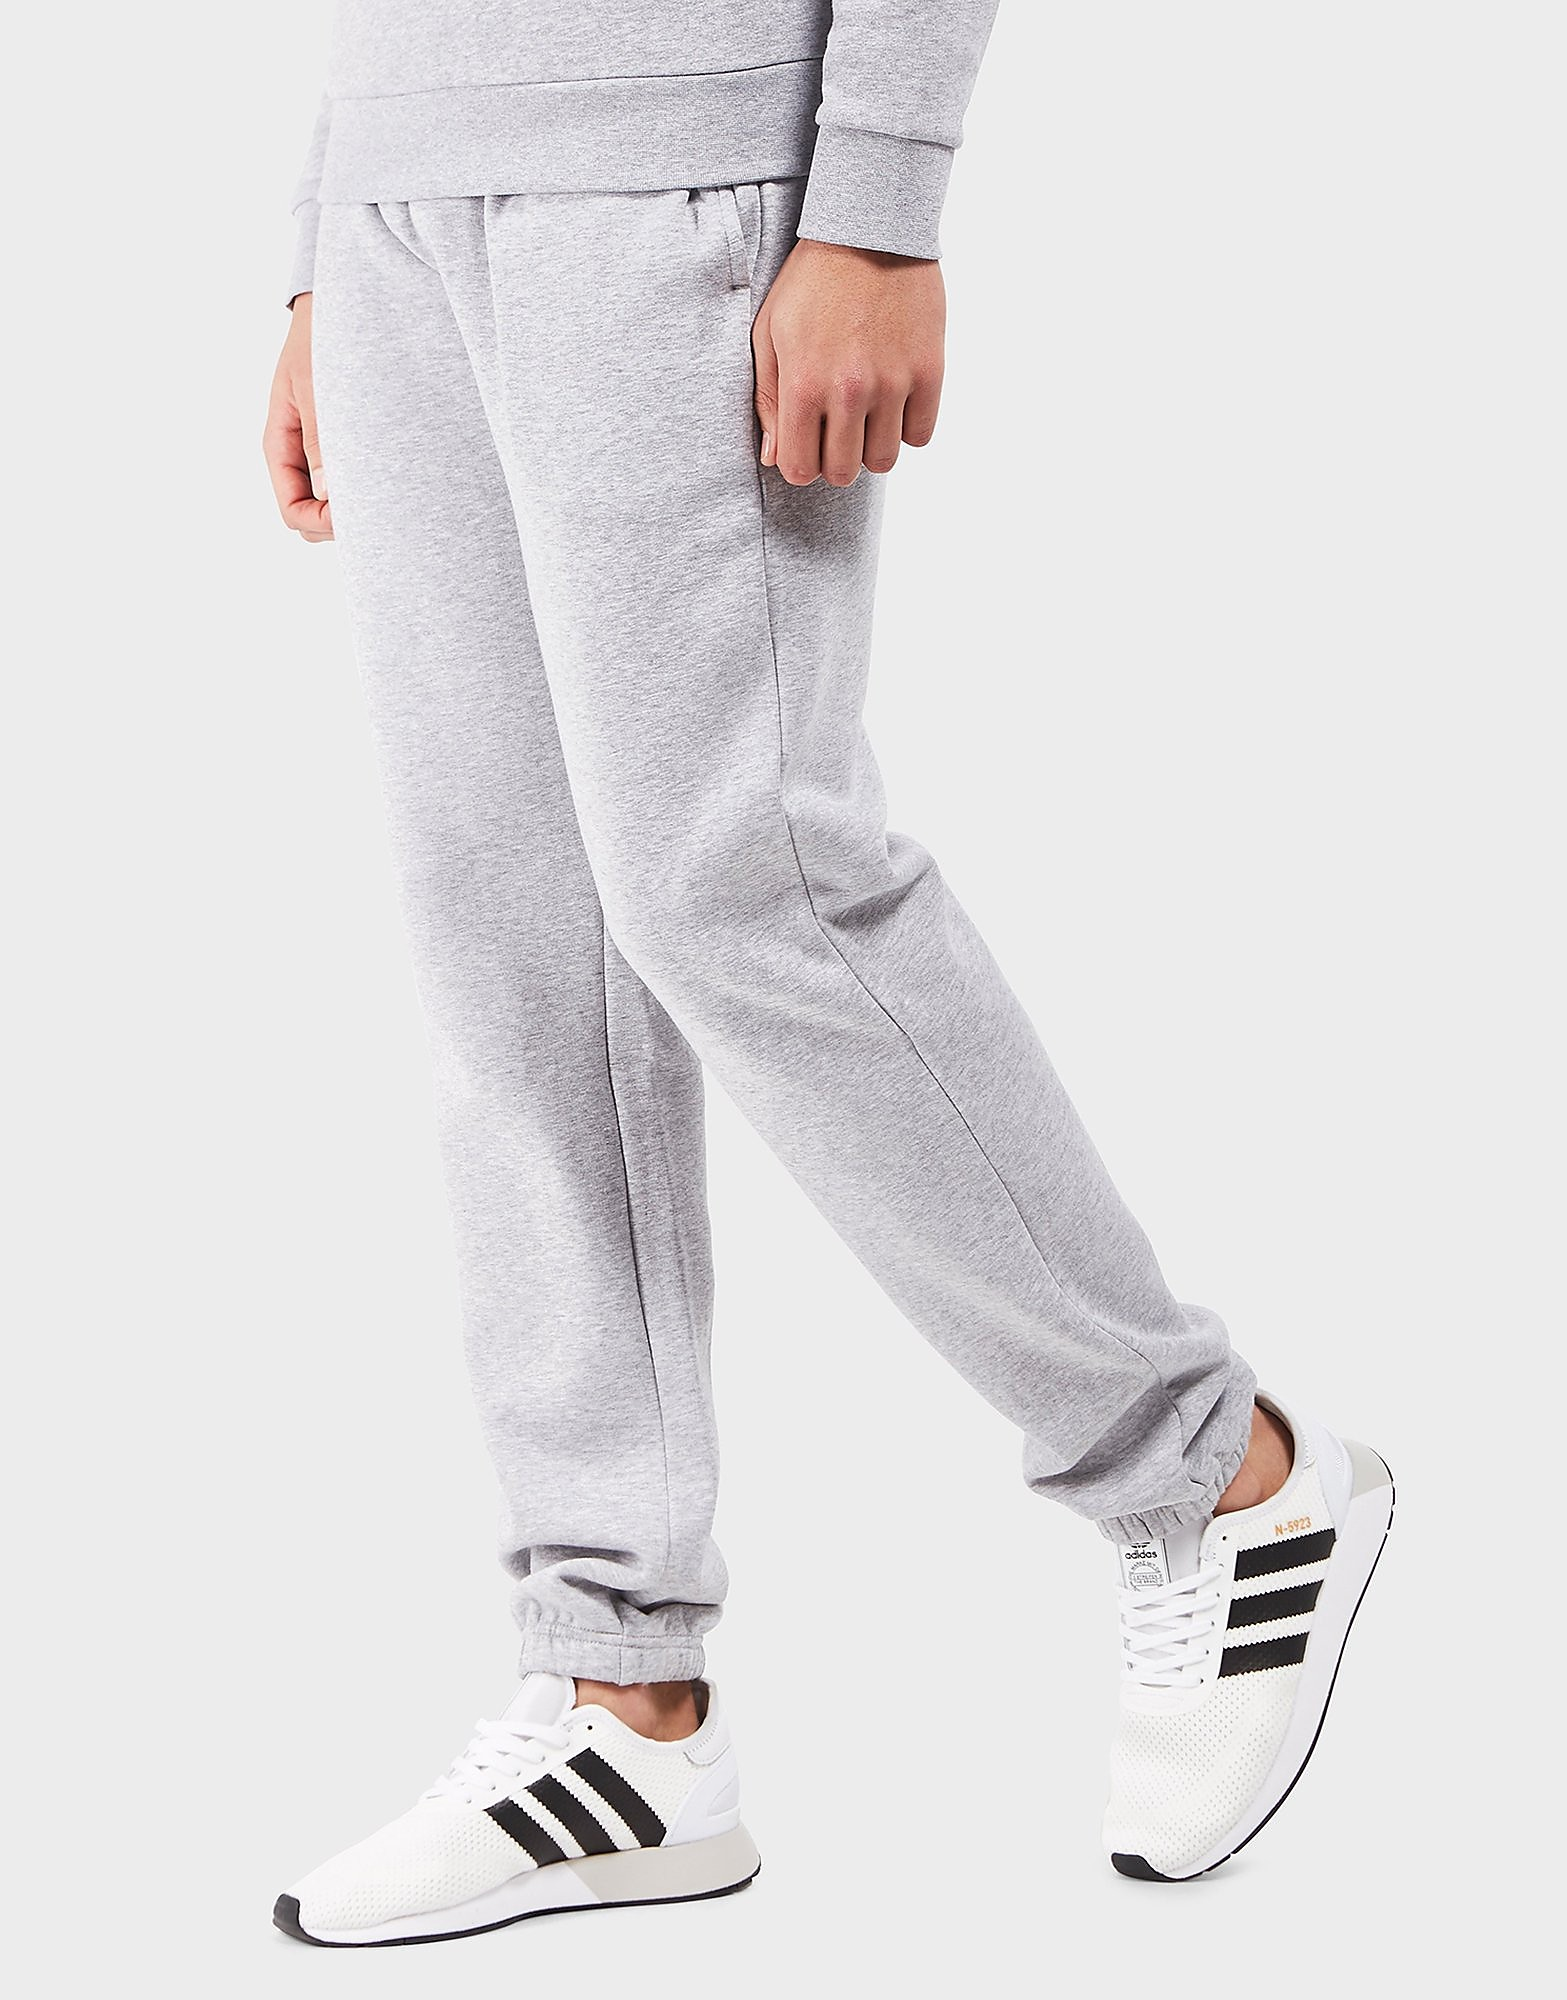 Lacoste Cuffed Fleece Track Pants